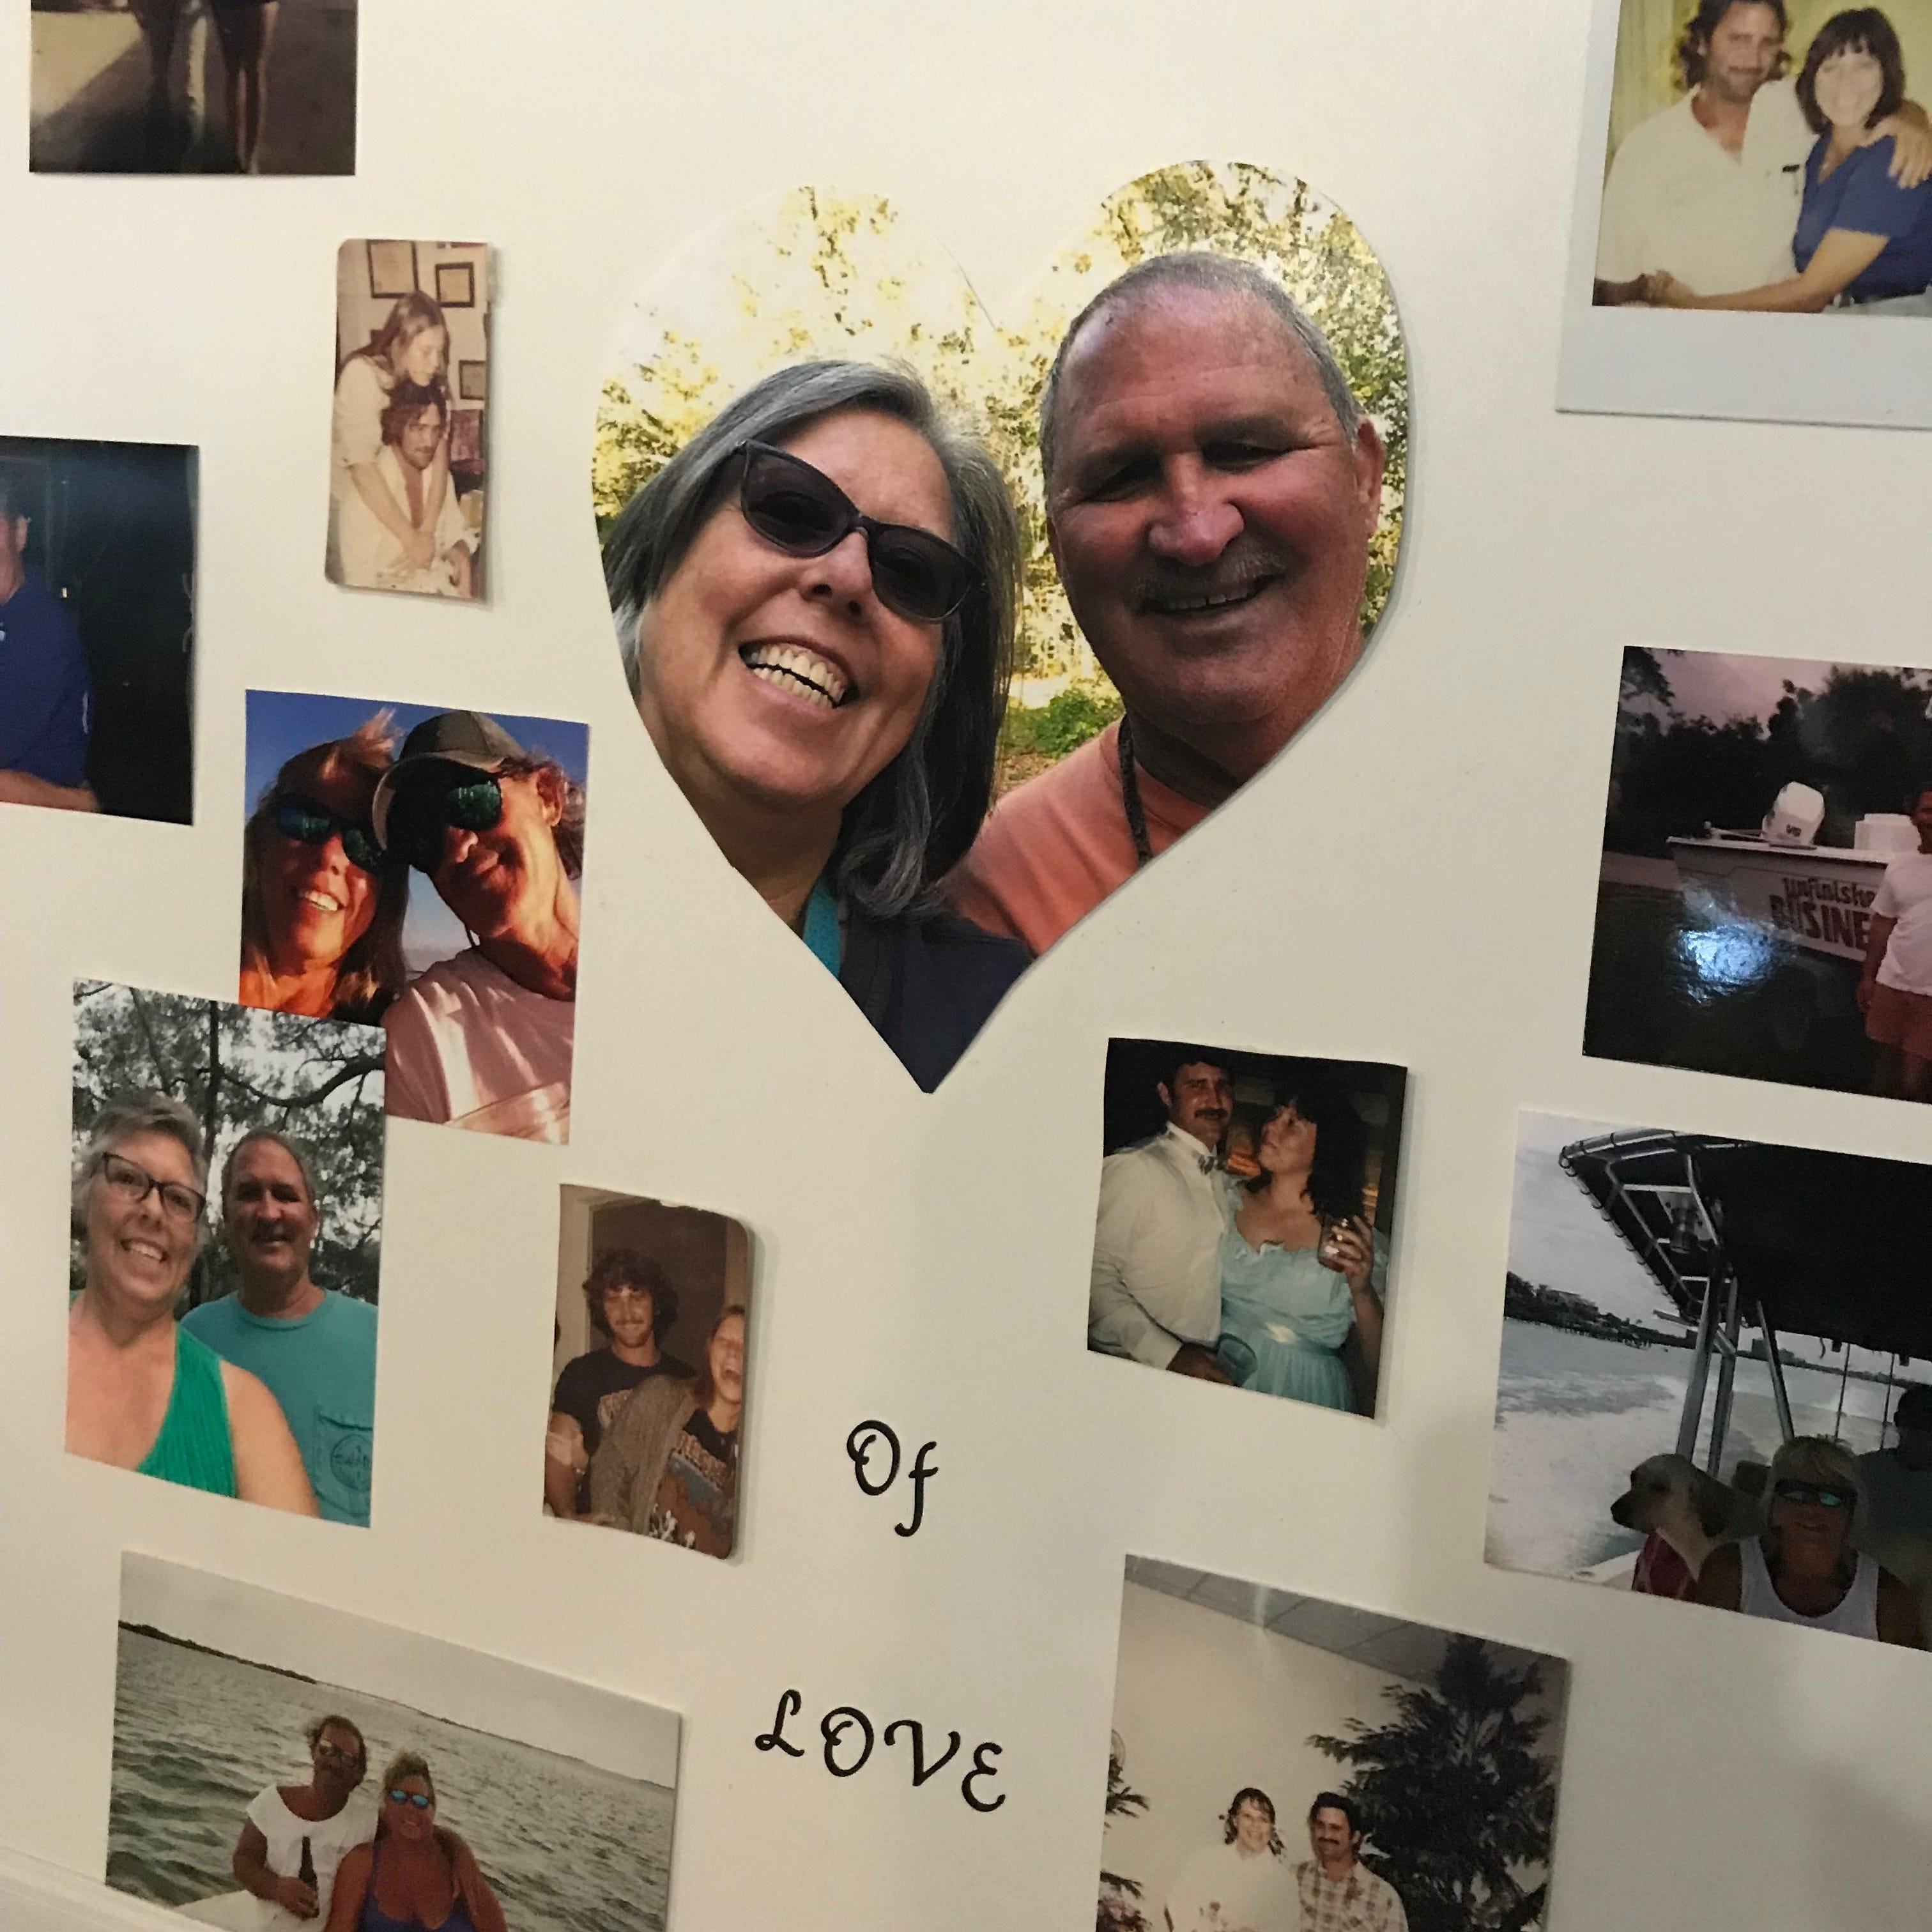 Hepatitis A killed her husband; now she wants answers from Health Department